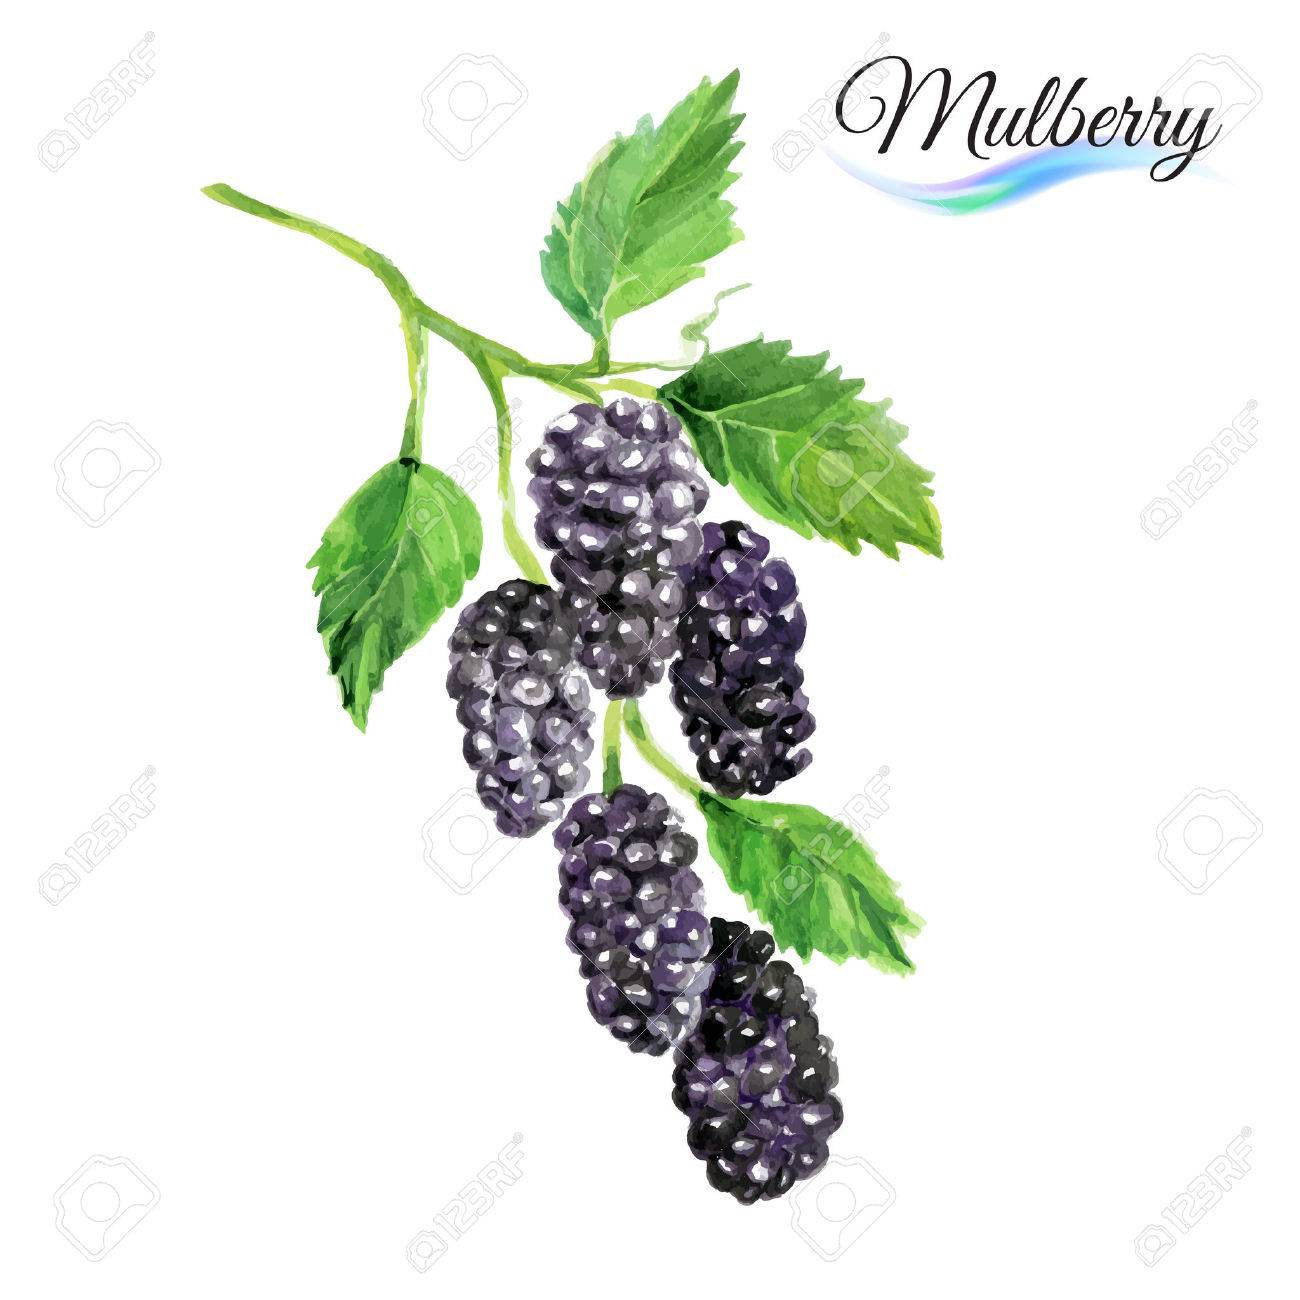 Watercolor fruit mulberry isolated on white background Stock Vector - 41609301